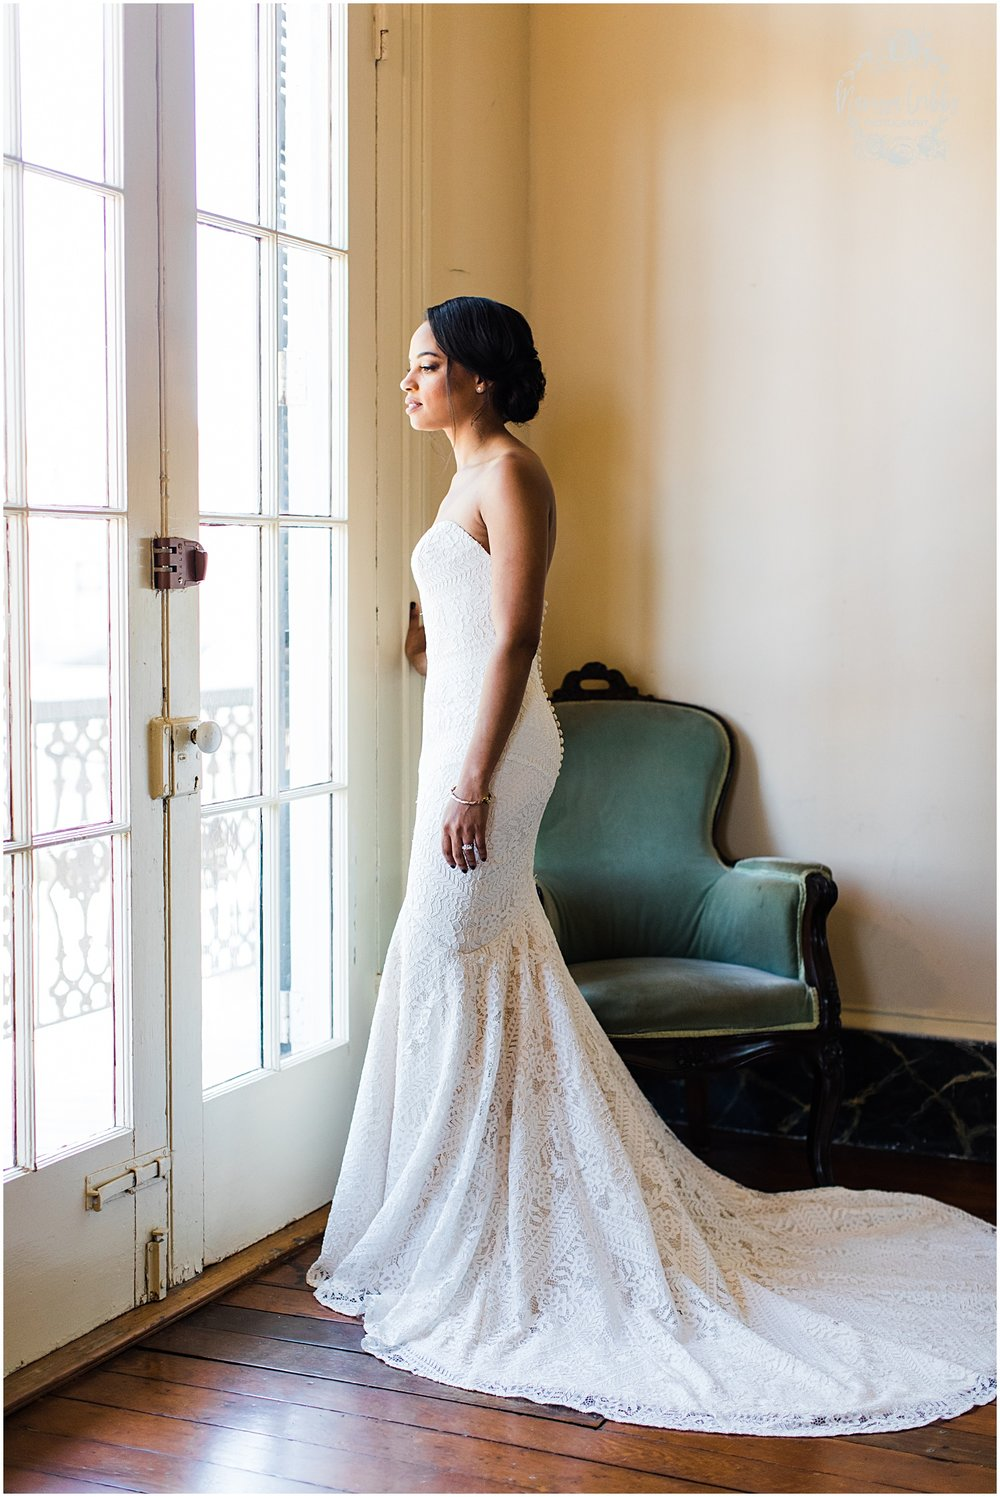 NEW ORLEANS WEDDING | BENACHI HOUSE | SARAH & MICHAEL | MARISSA CRIBBS PHOTOGRAPHY_4400.jpg